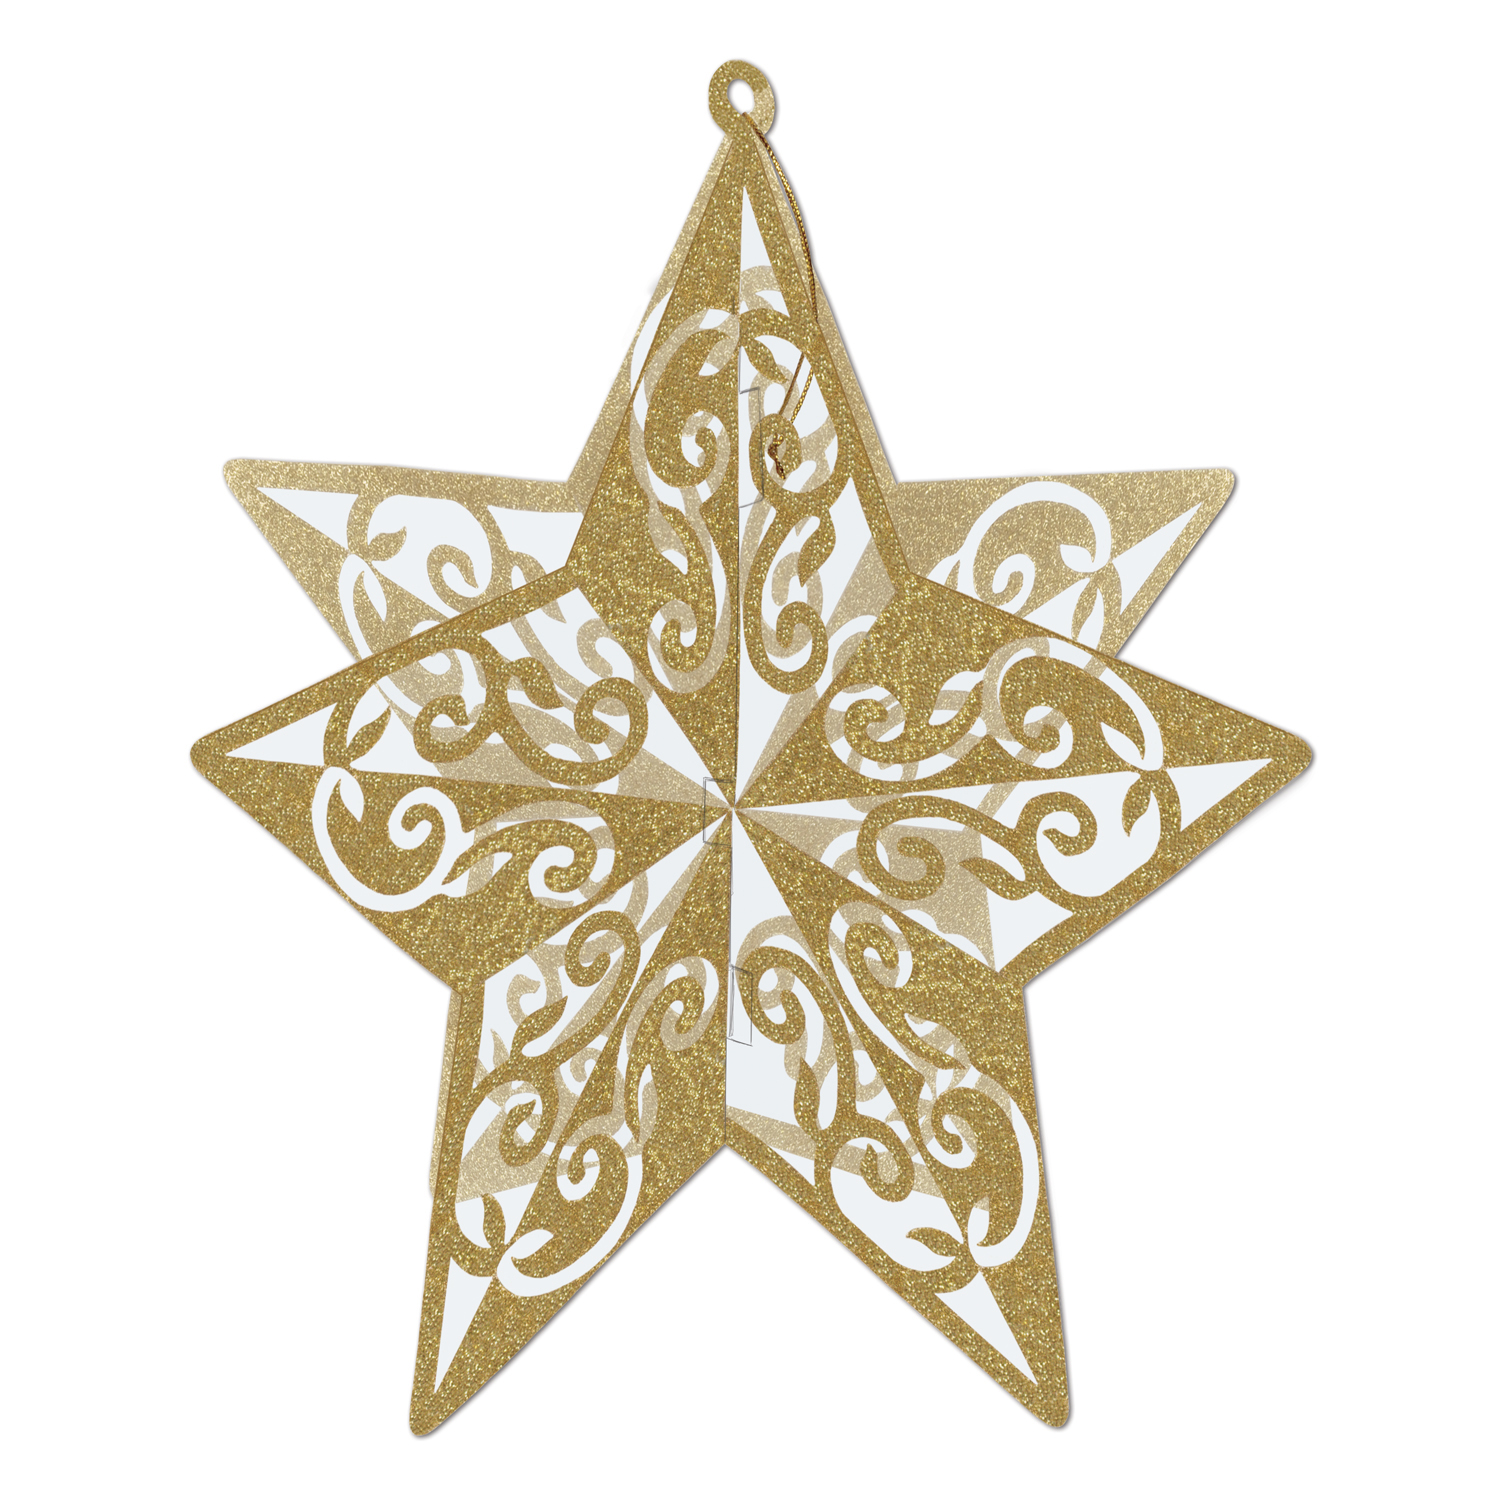 3-D Glittered Star Centerpiece 12in gold